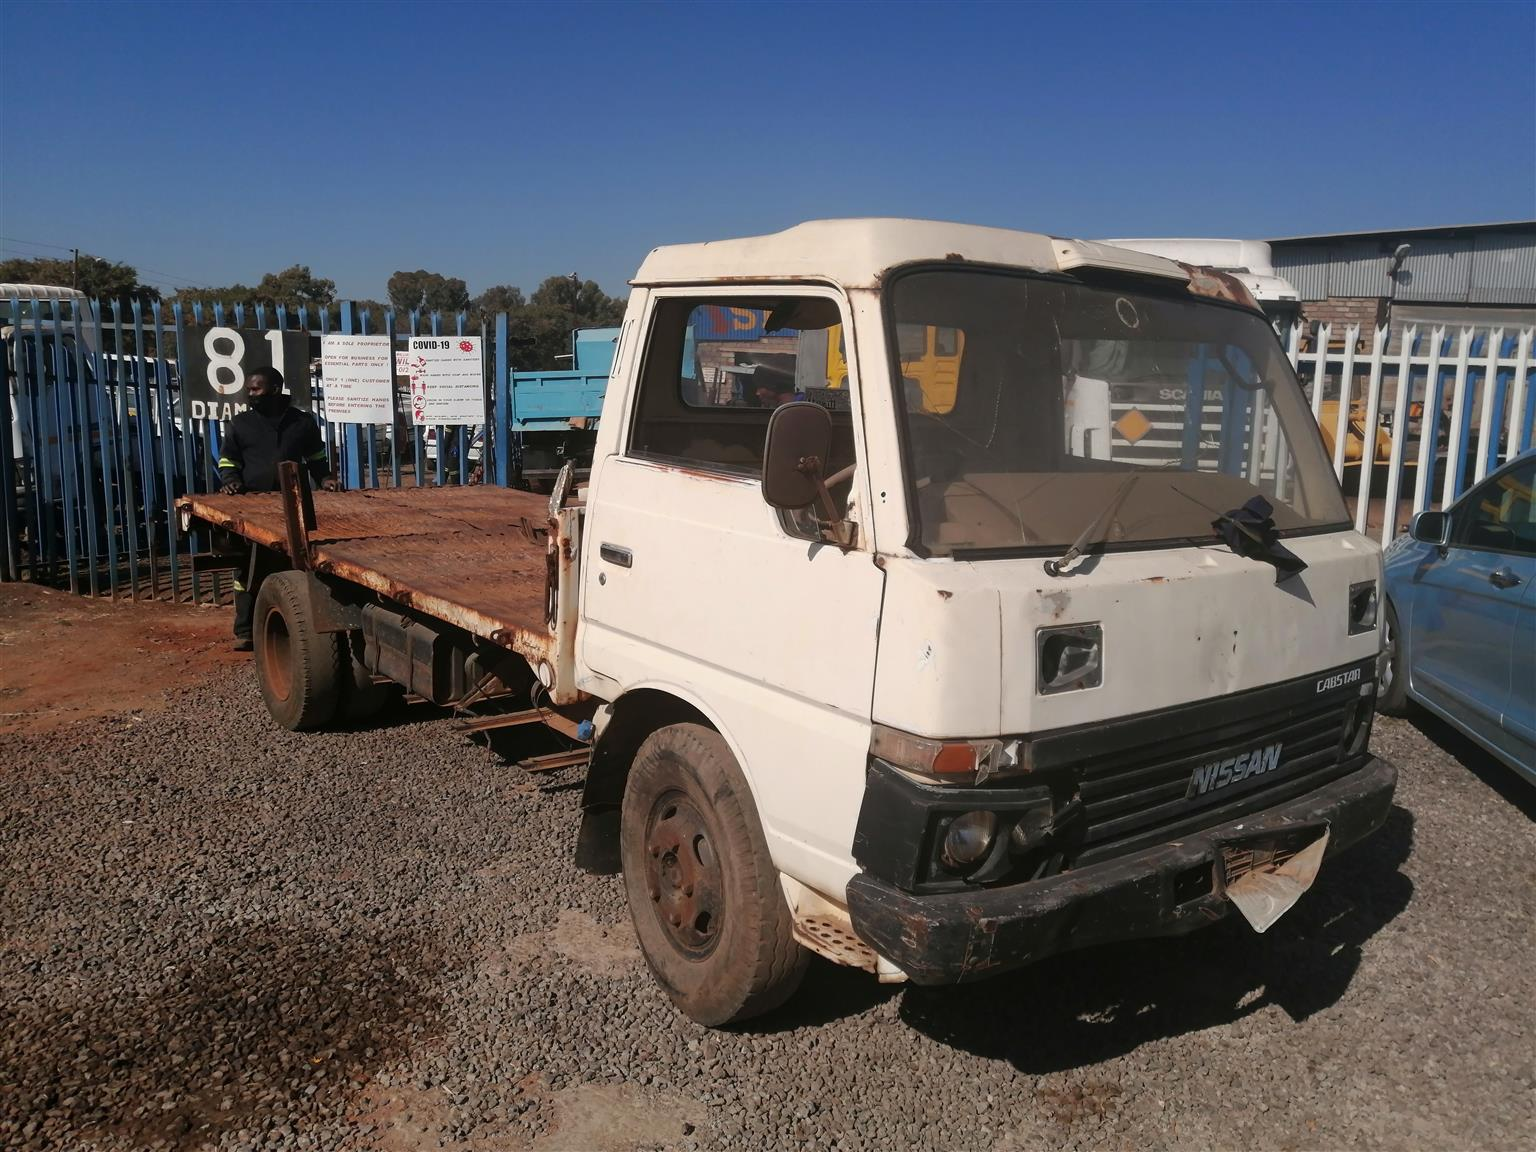 Stripping Nissan caster for spares with L28 engine